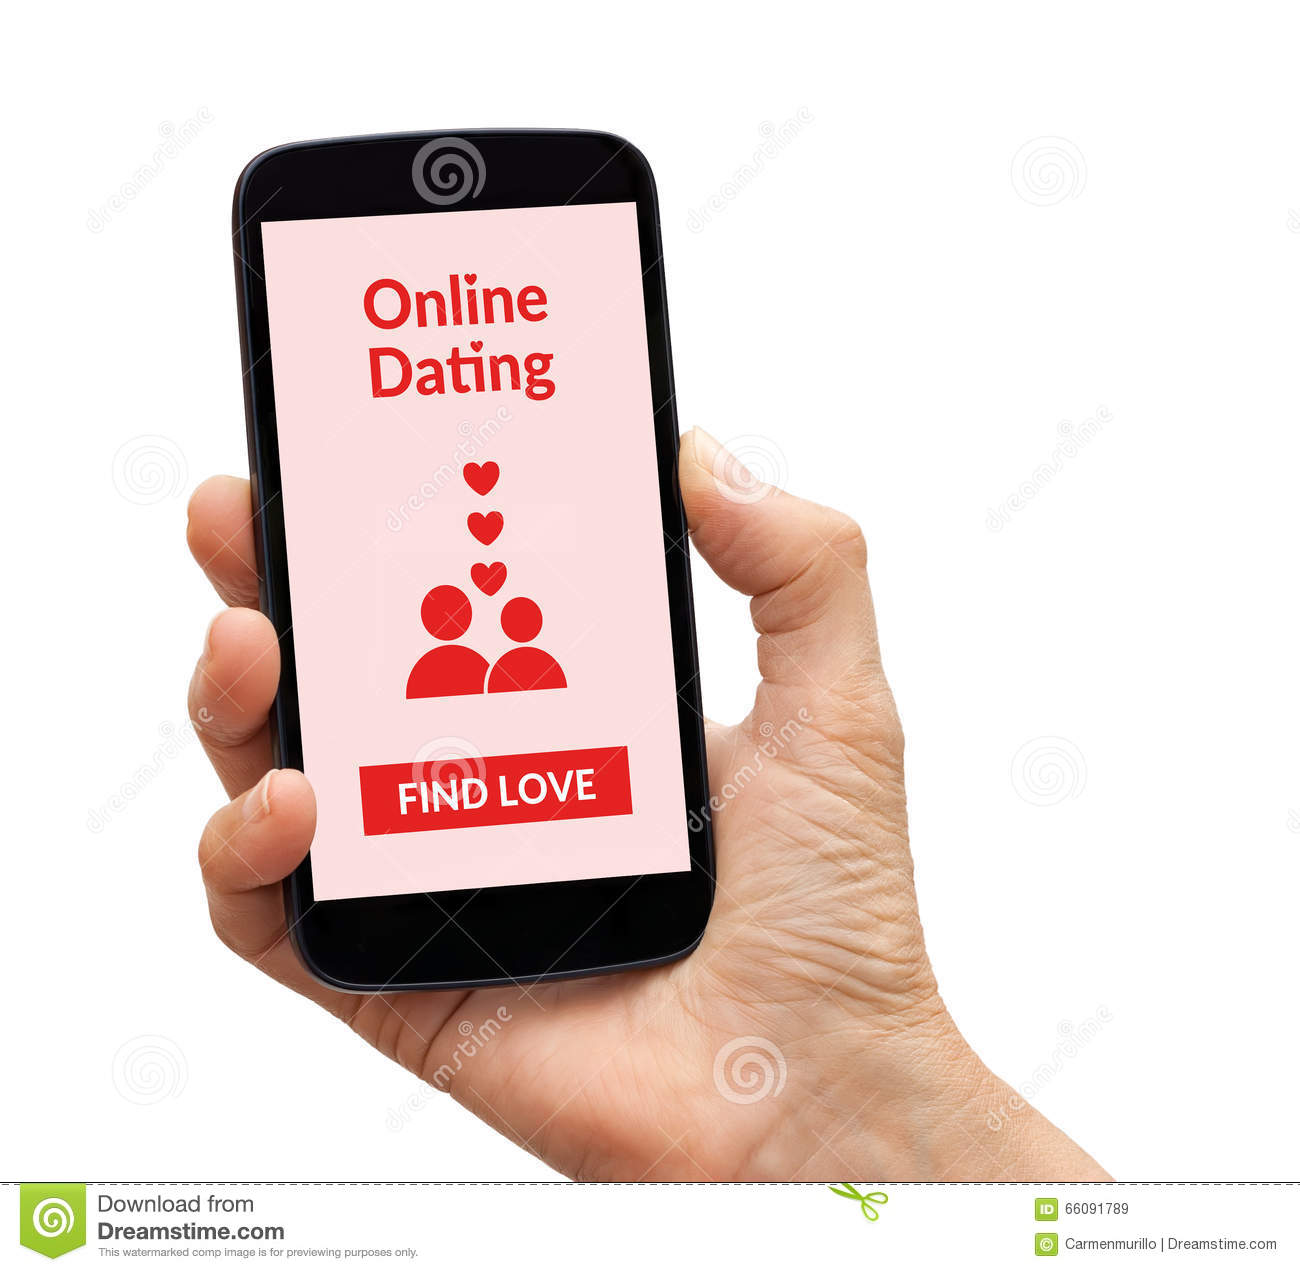 Free dating on the phone